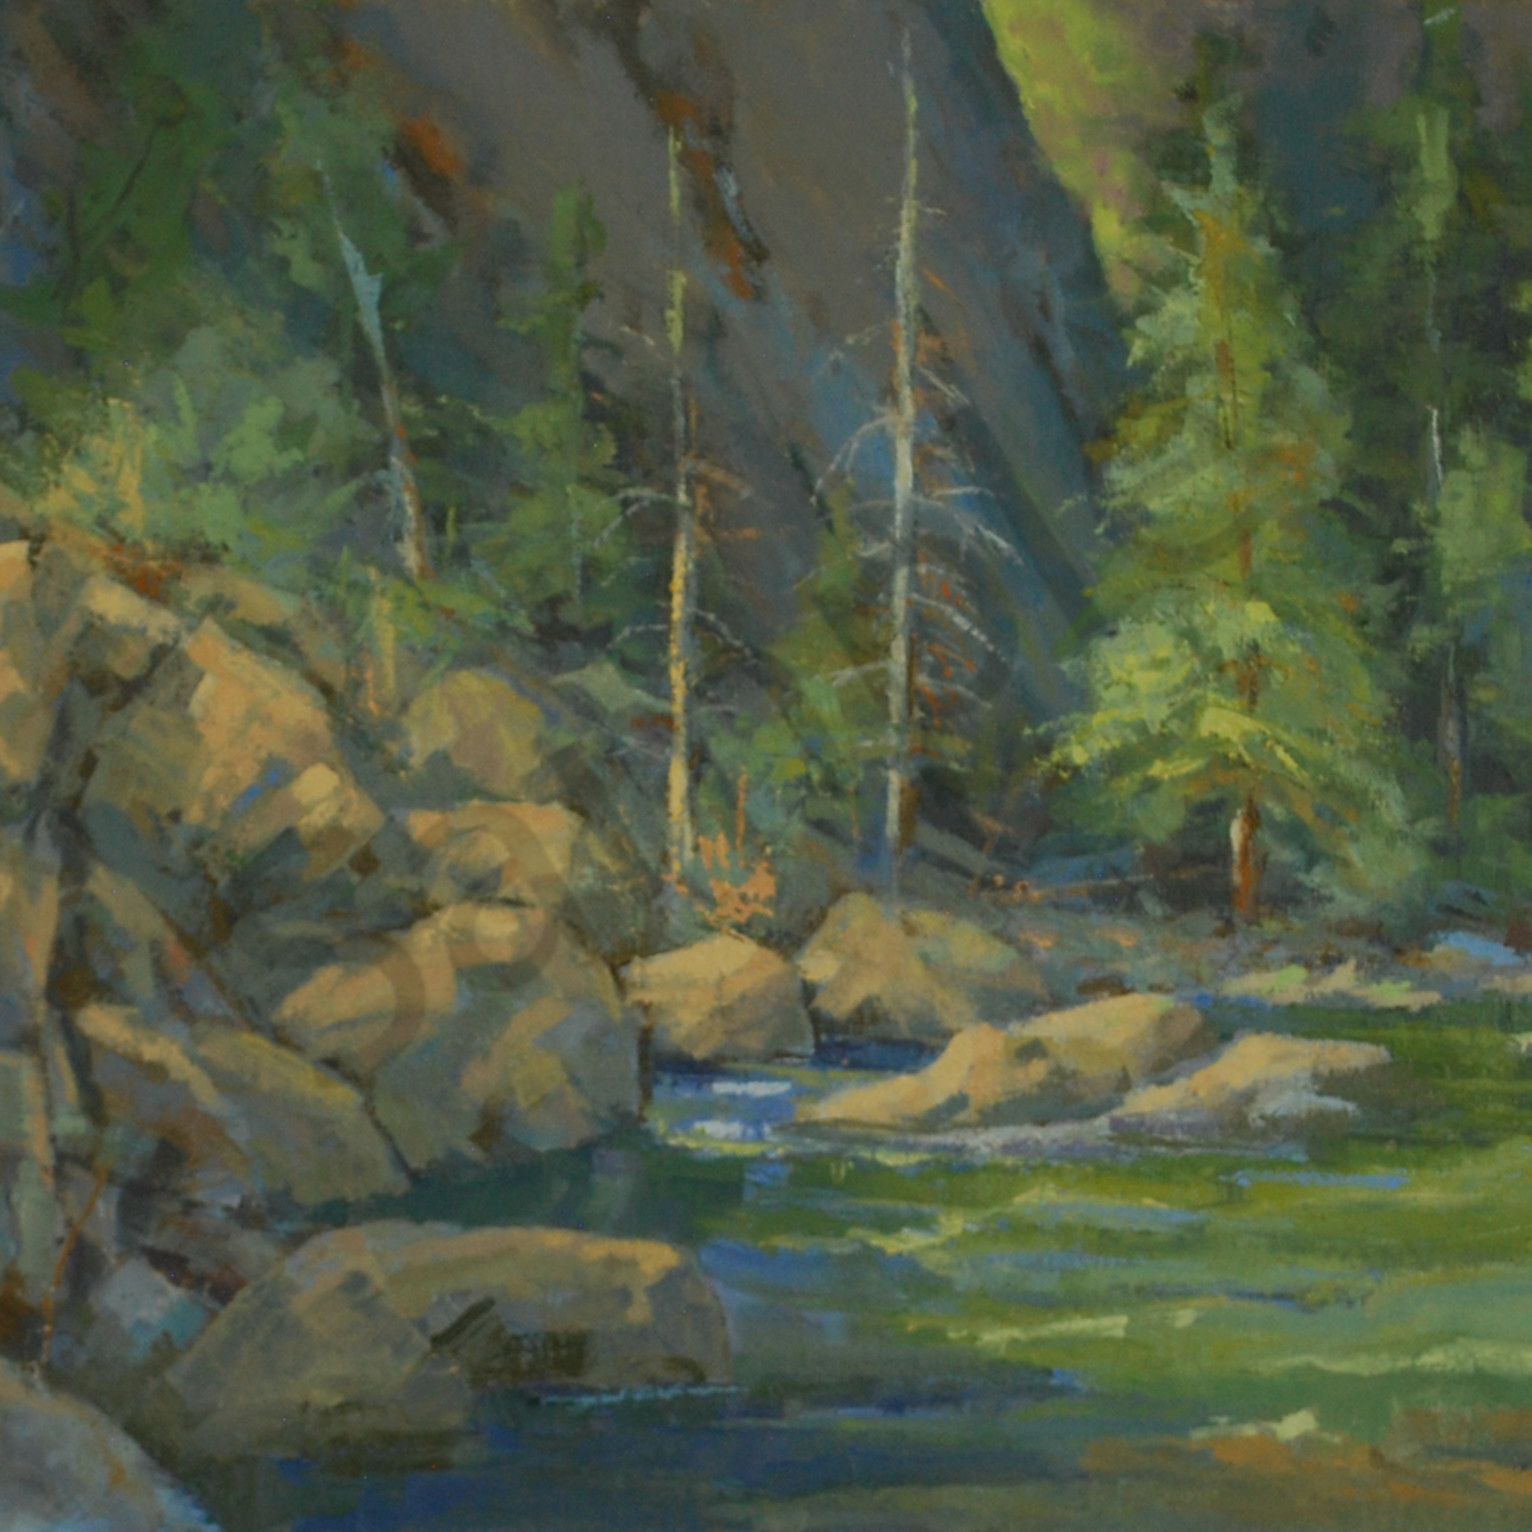 St vrain canyon ce1ucx